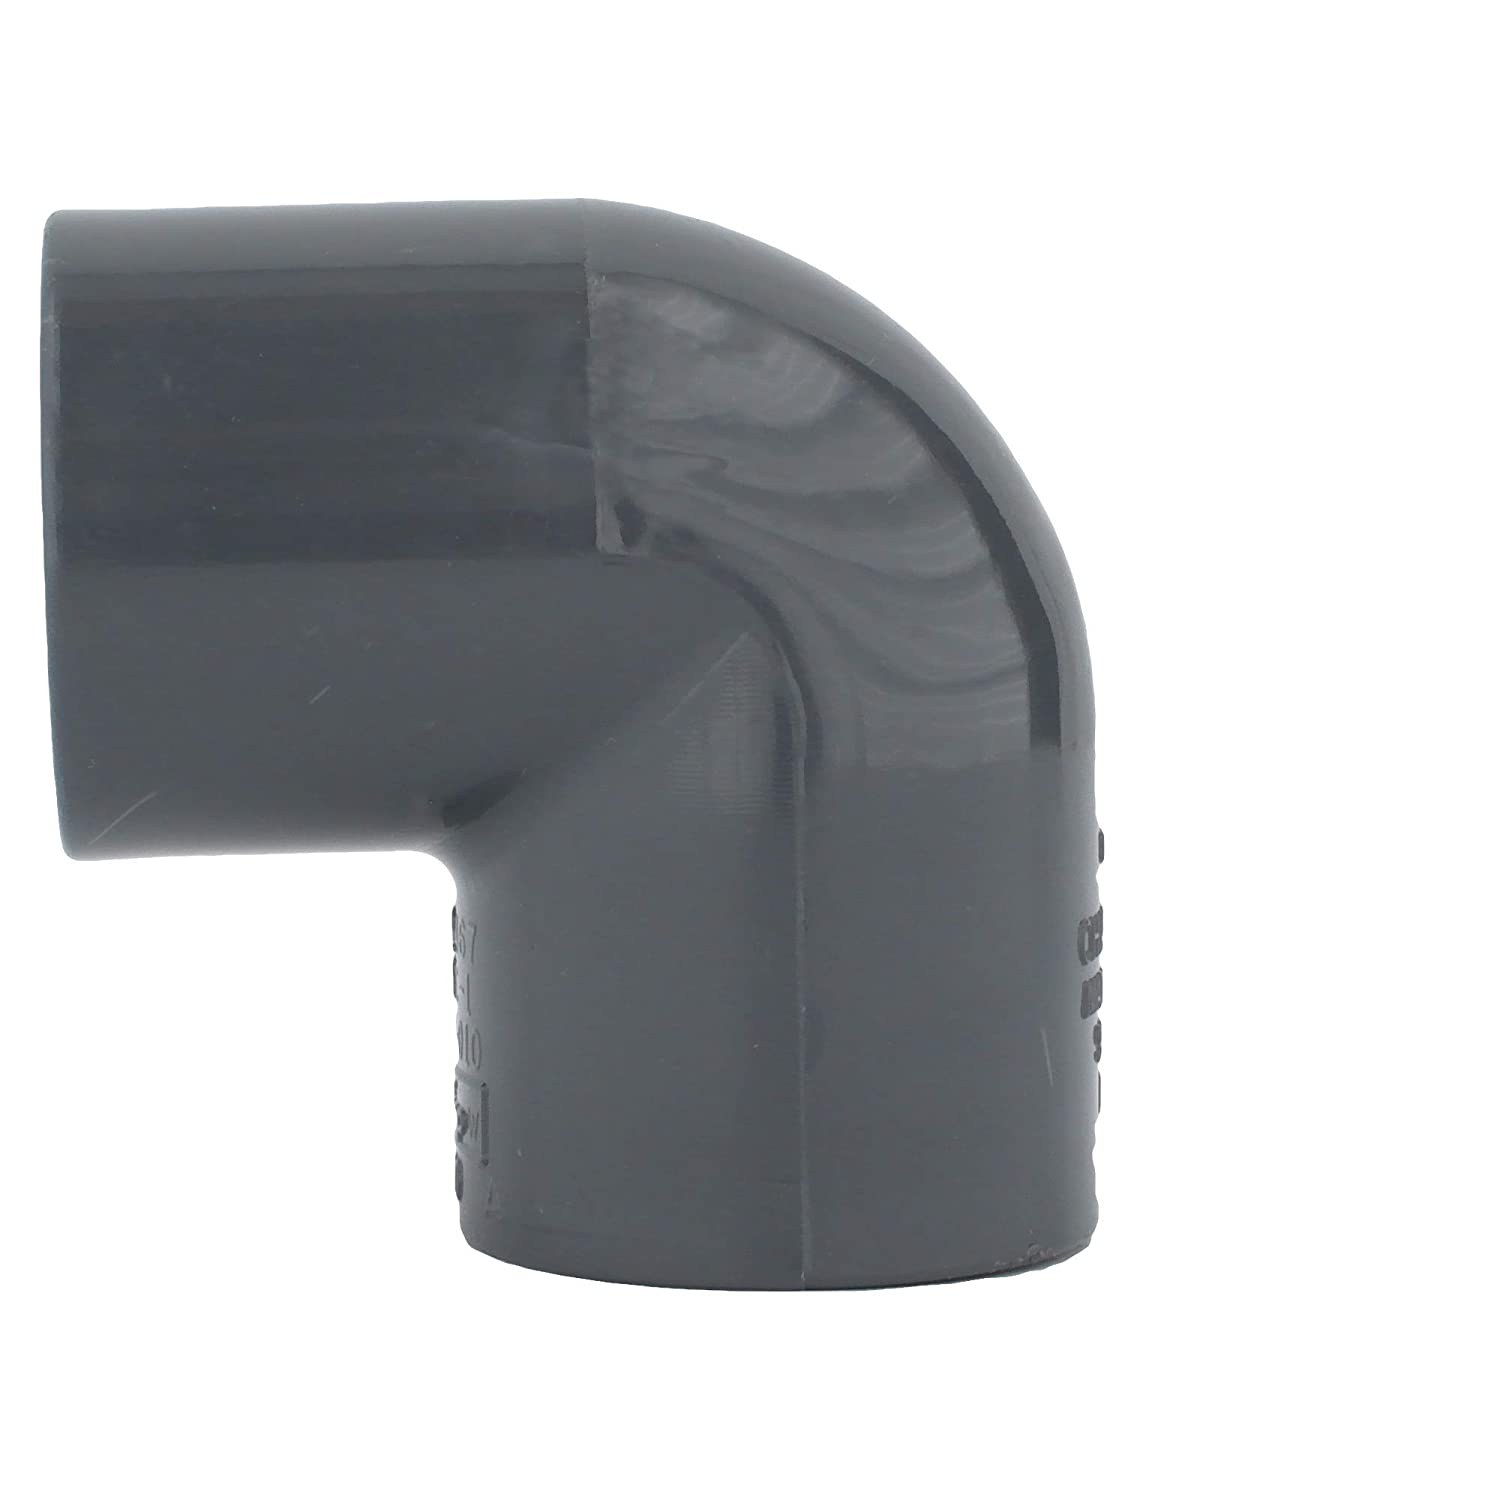 Charlotte Pipe 1 90 Degree Elbow Pipe Fitting - 10 Unit Box Schedule 80 PVC Pressure Durable High Tensile and Sound Deadening for Home or Industrial Use Easy to Install Socket x Socket